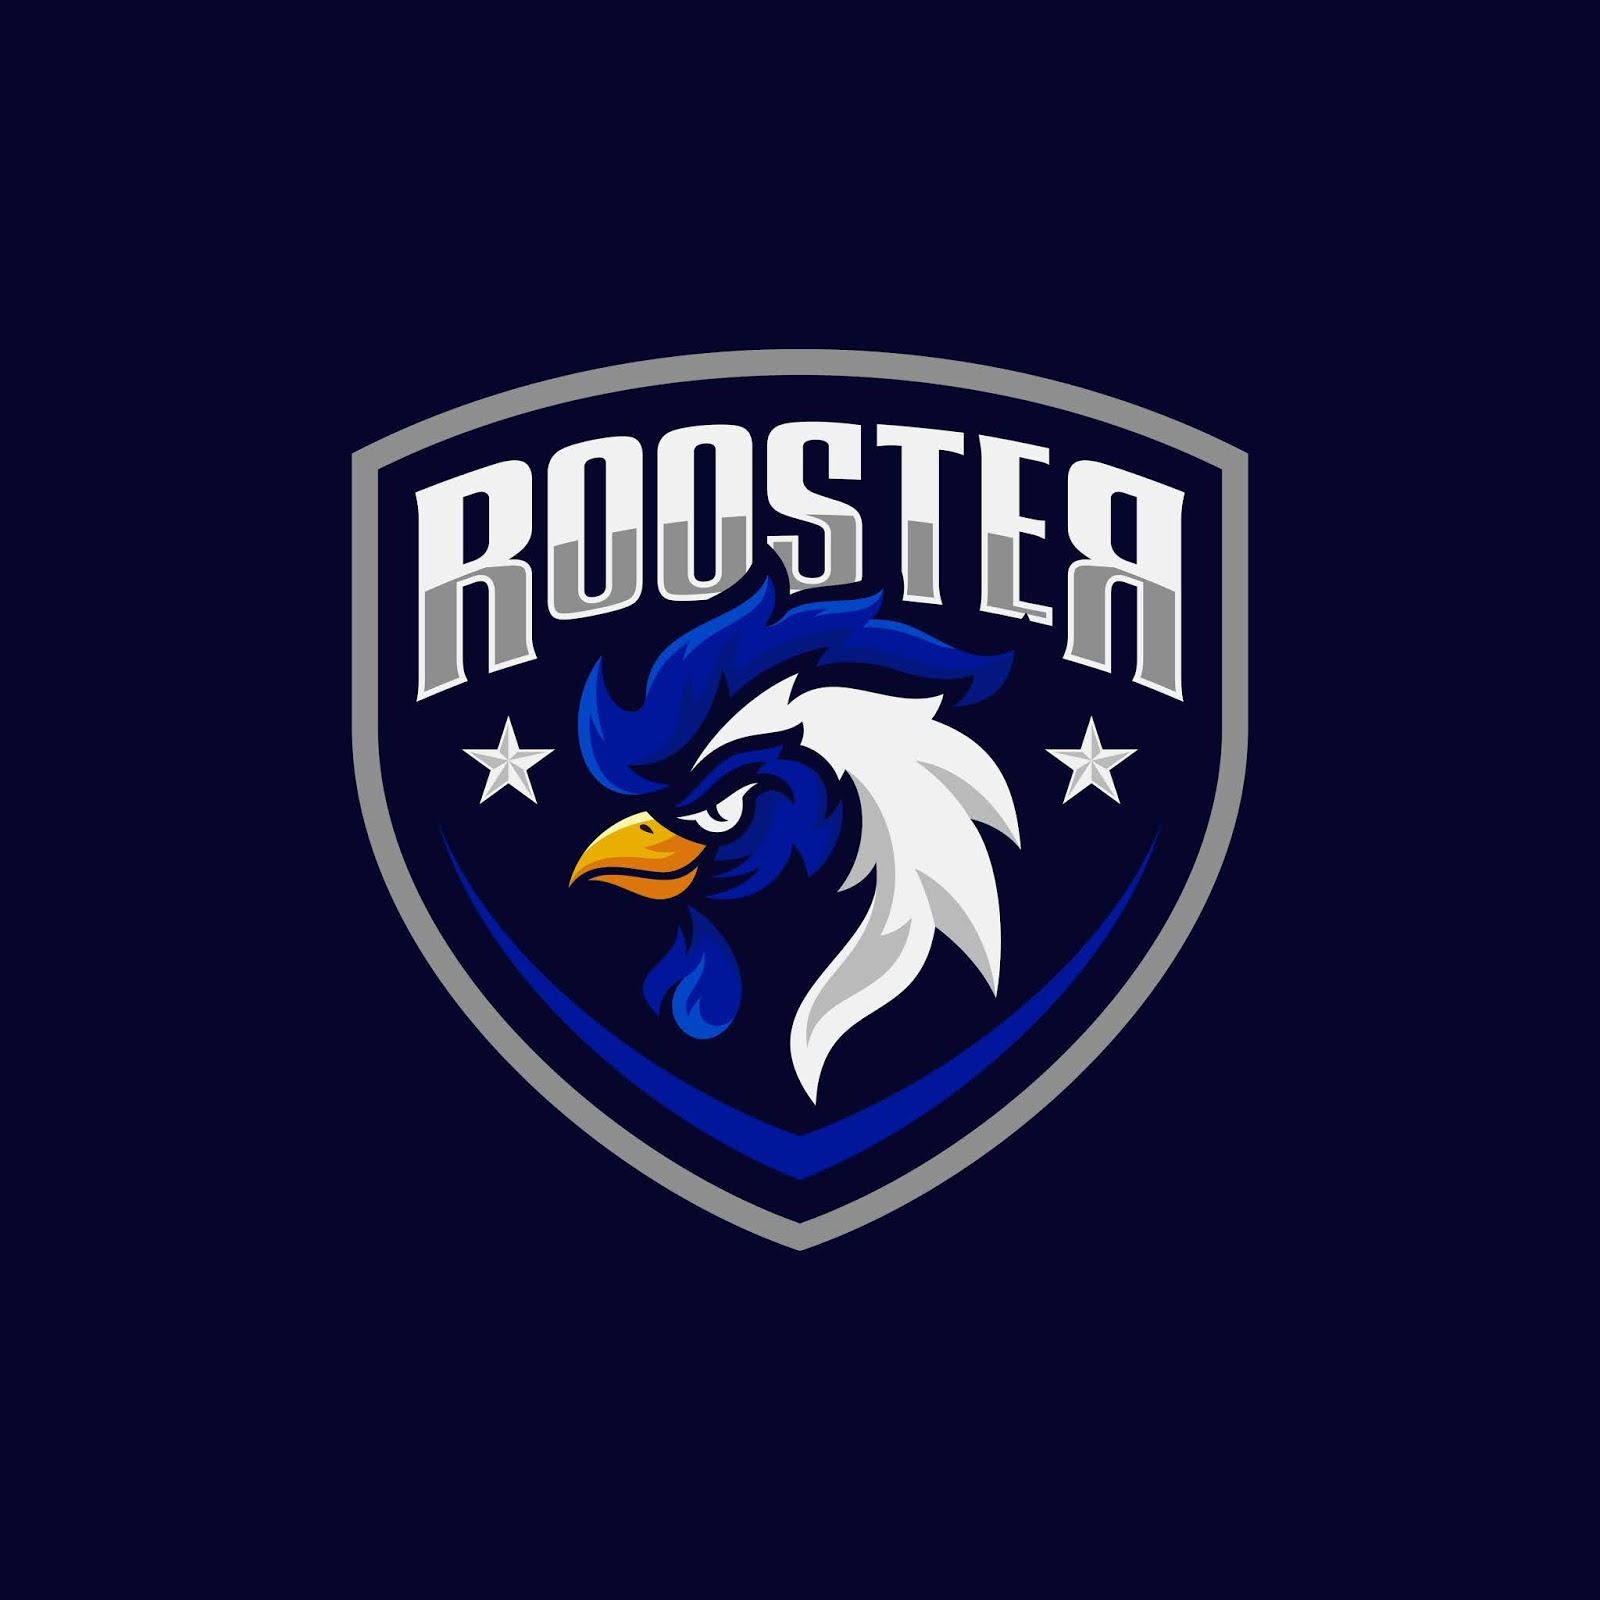 Rooster Mascot Sport Logo Design Free Download Vector CDR, AI, EPS and PNG Formats